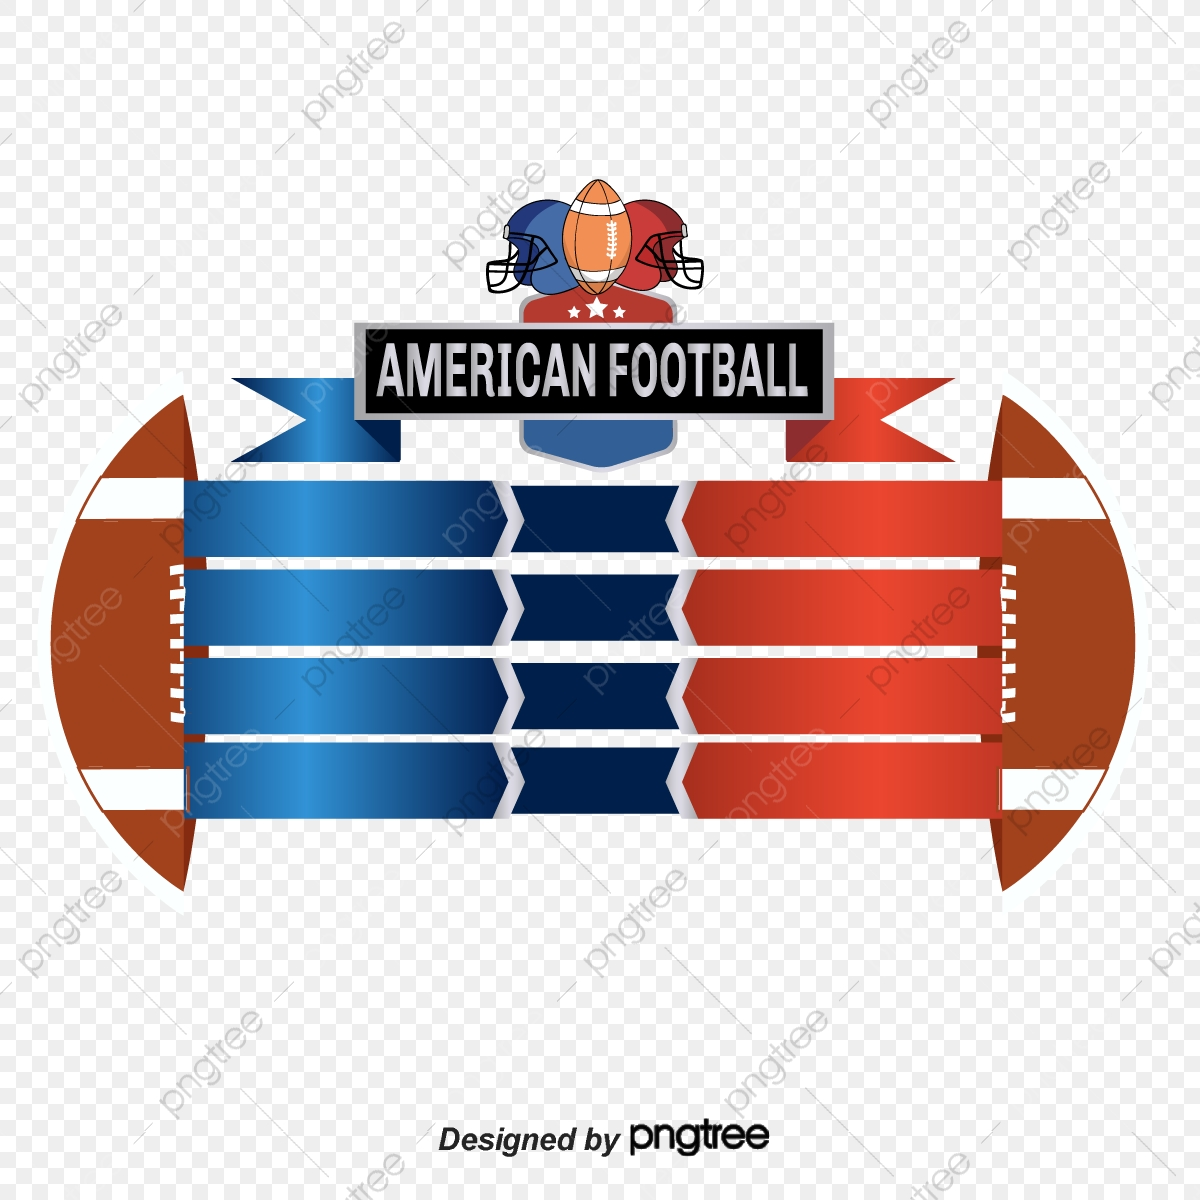 Red Blue Retro American Football Scoreboard Elements Sports Helmet Gradient Png And Vector With Transparent Background For Free Download